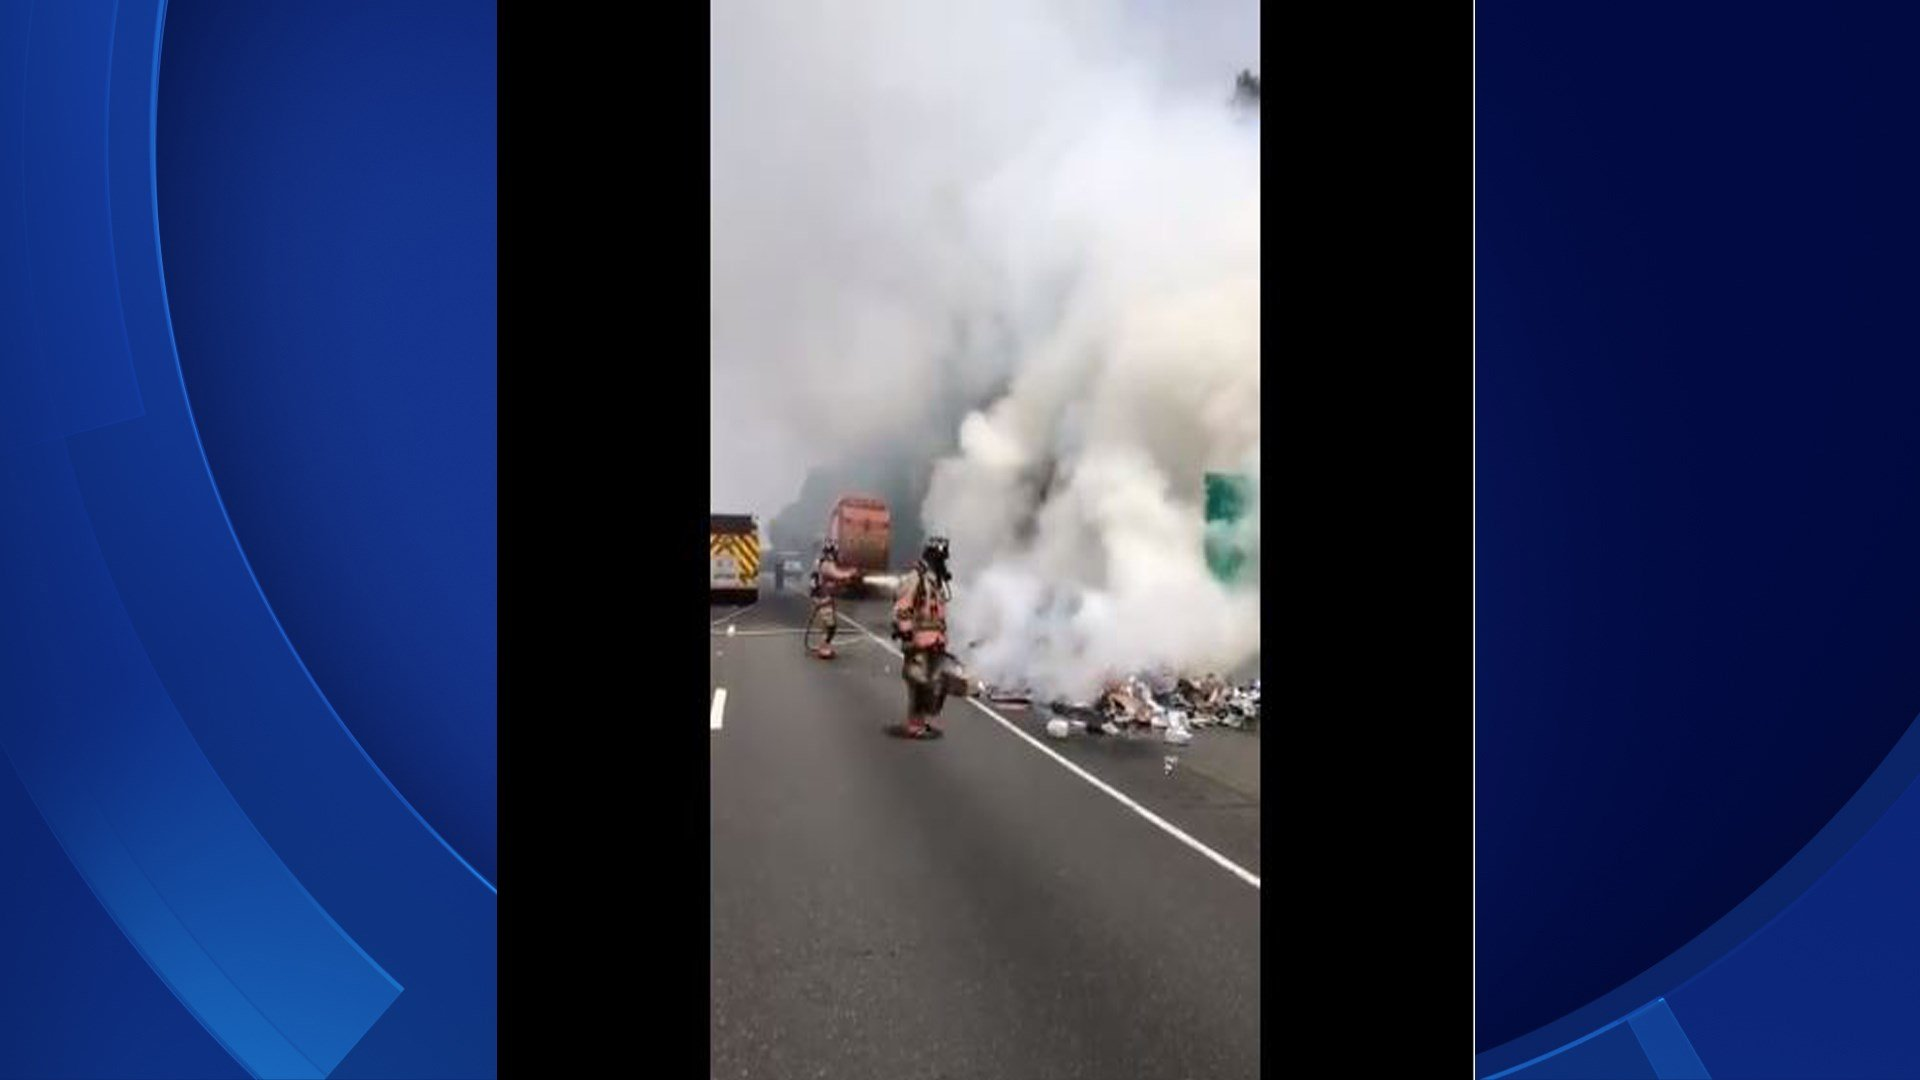 A garbage truck fire was reported on I-91 in Wallingford (@CT_STATE_POLICE)